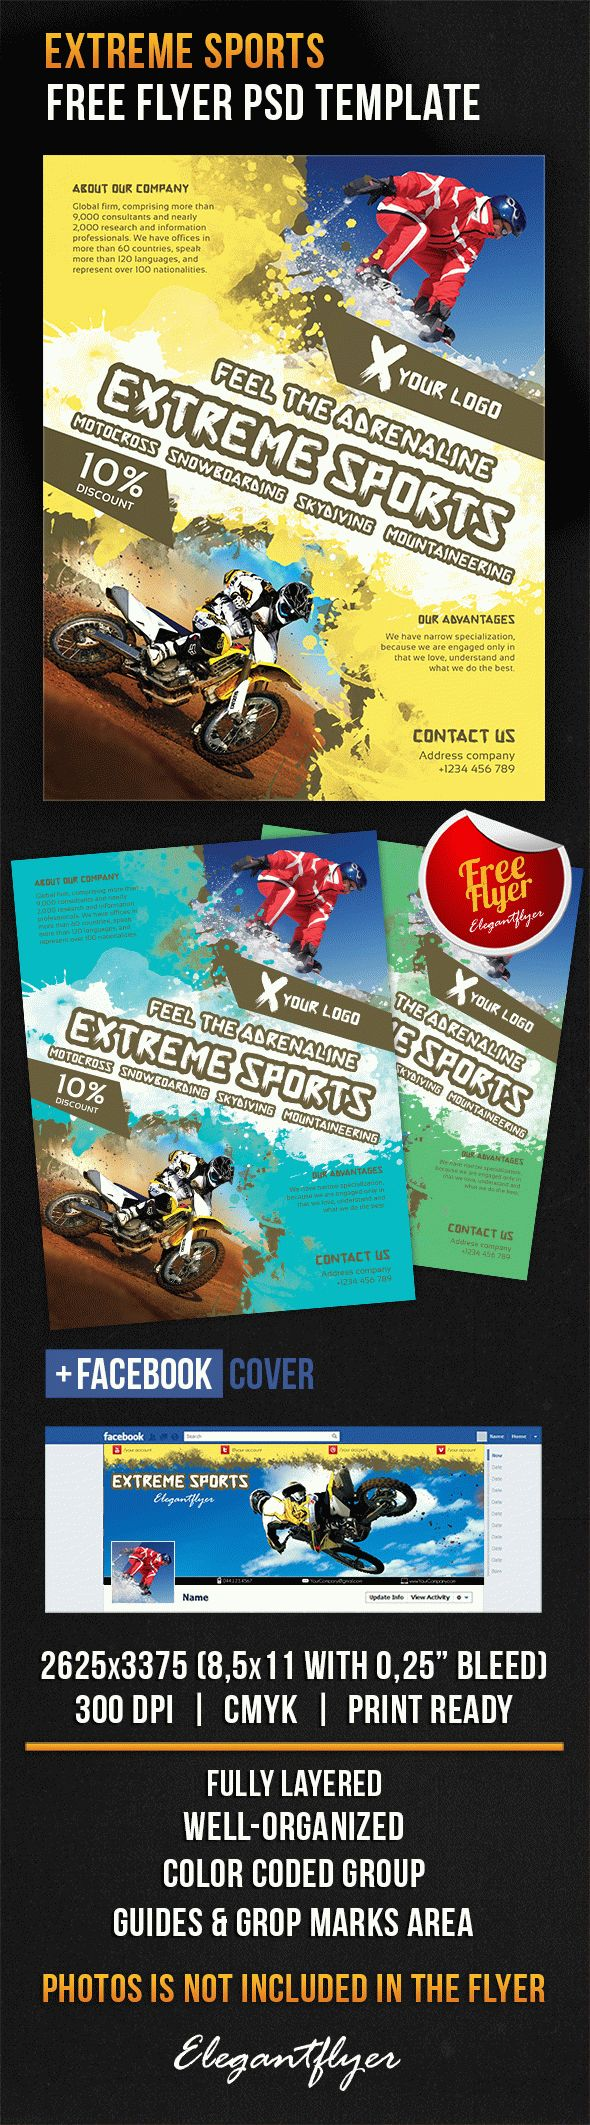 Extreme Sports – Free Flyer PSD Template – by ElegantFlyer